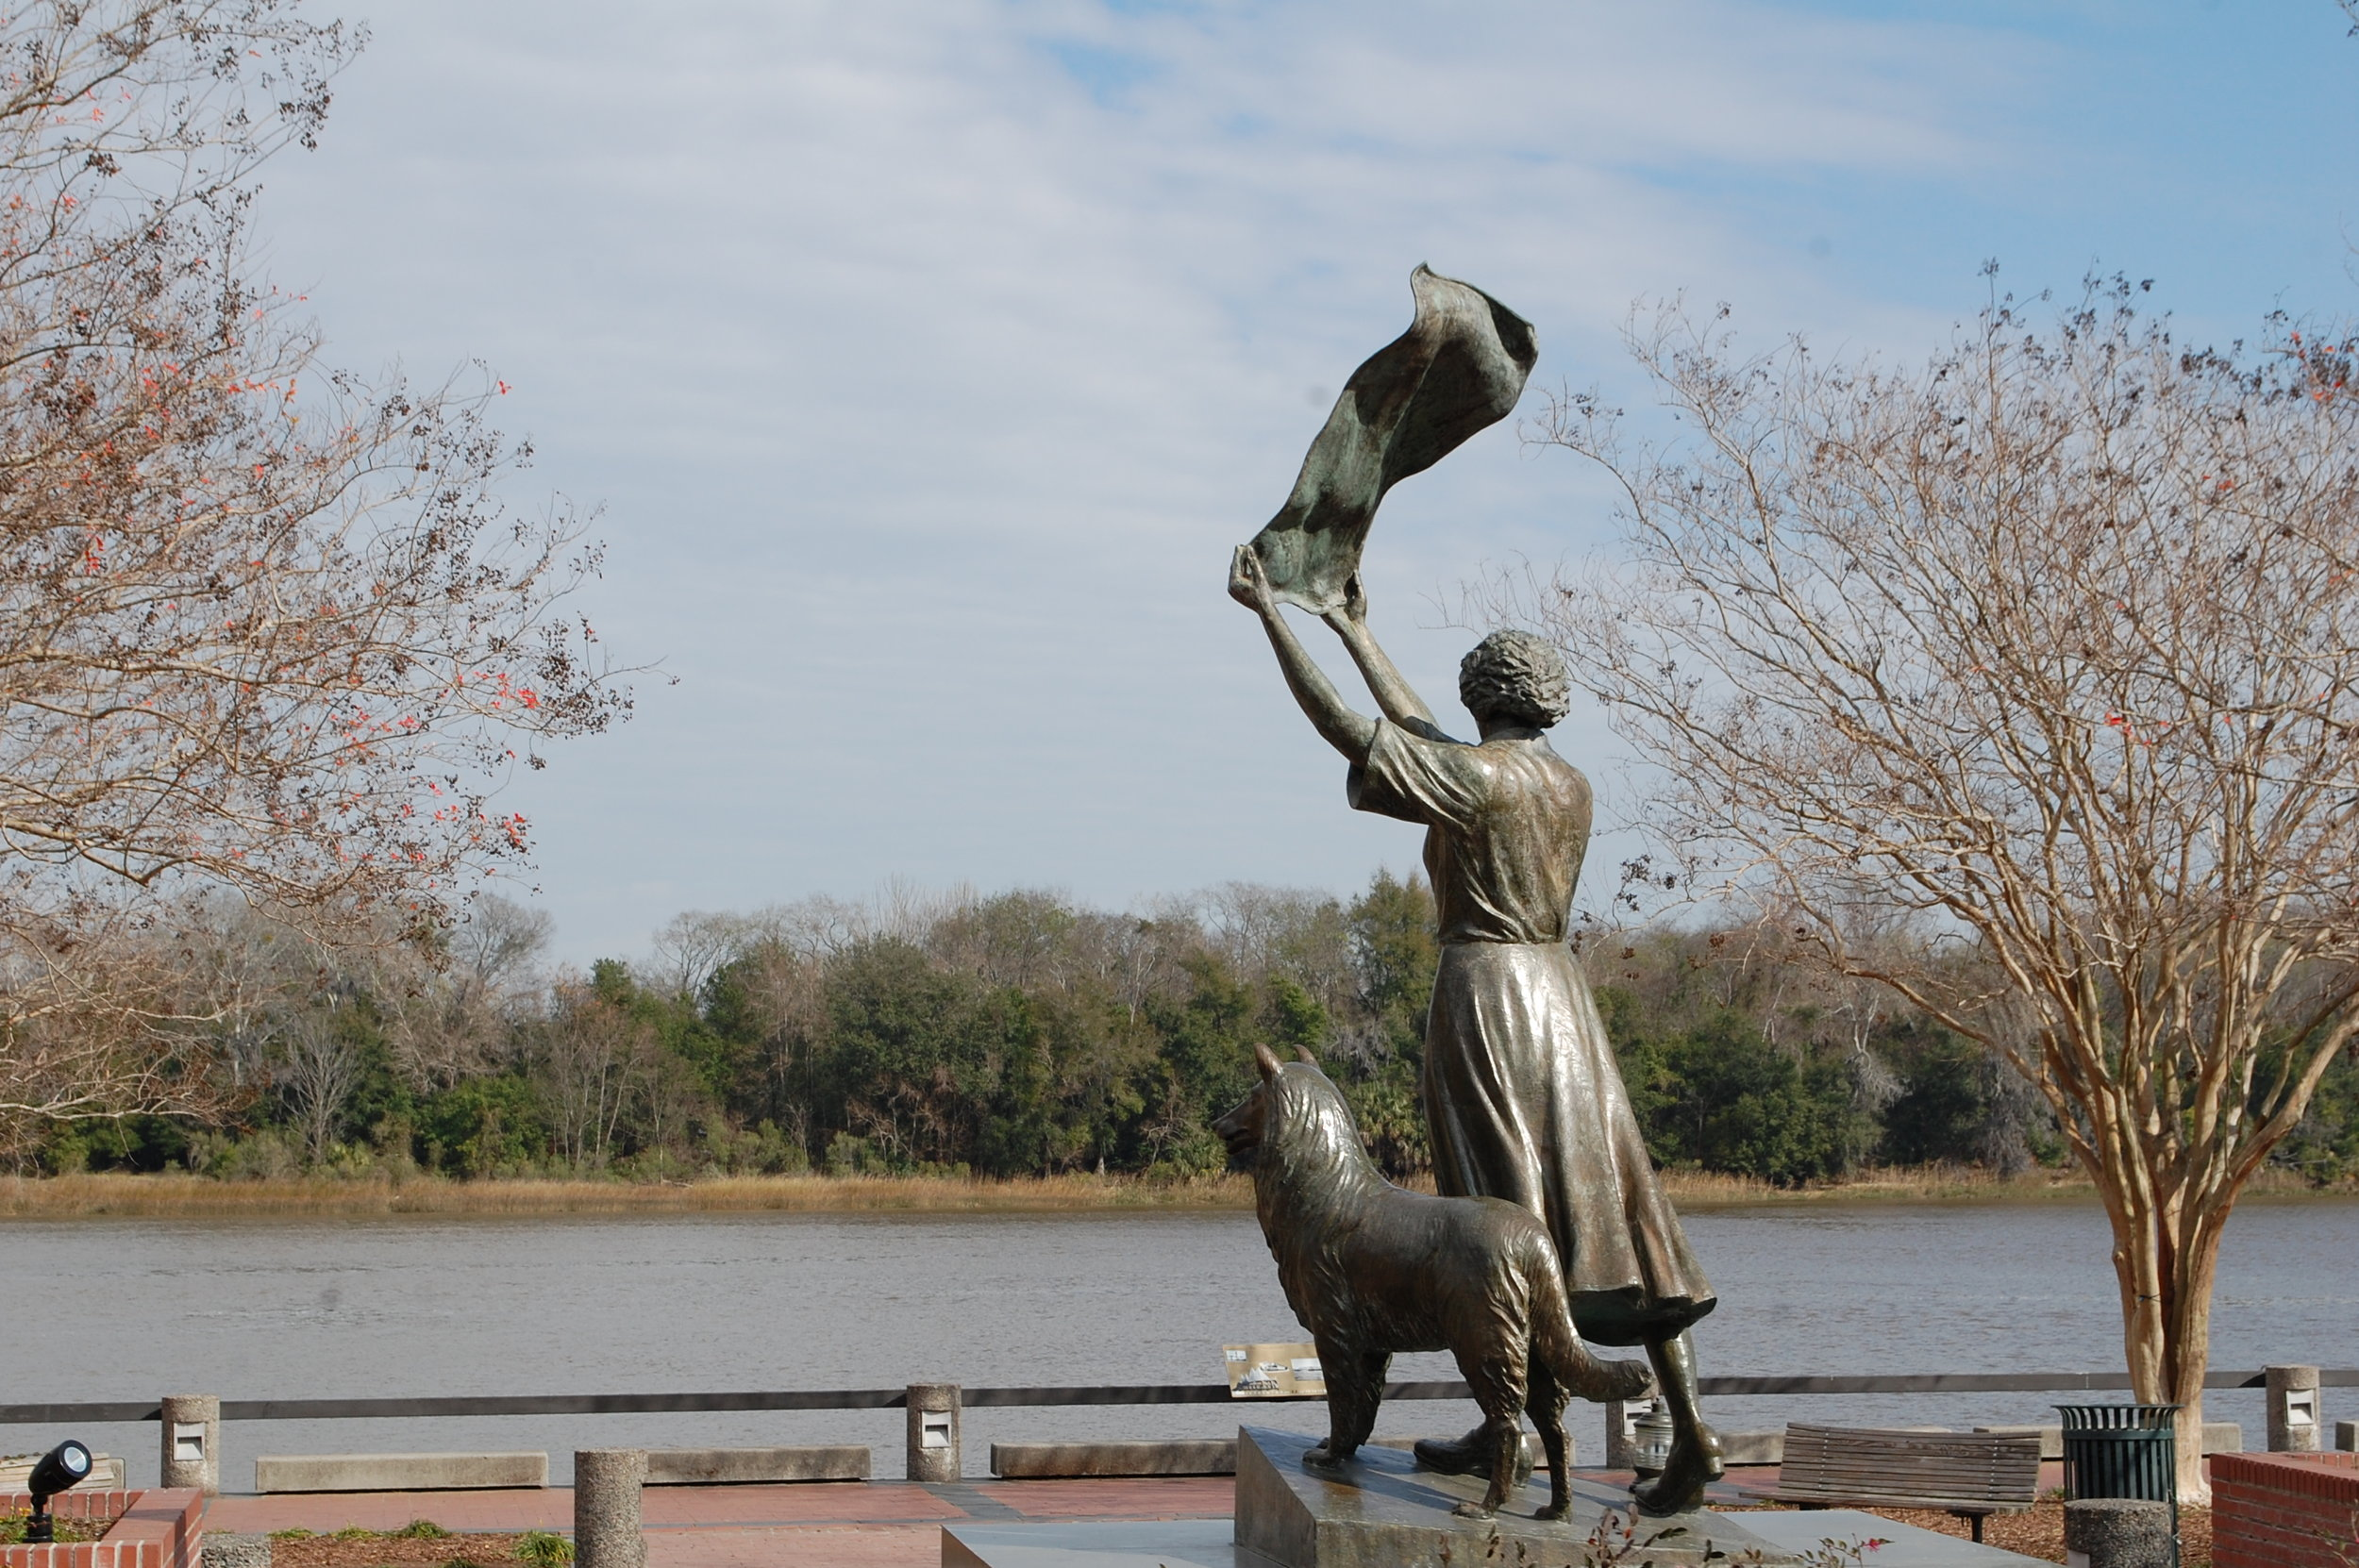 This statue is called the Waving Girl Statue on the River front. It depicts Florence Martus, whose family kept the island lighthouse, greeting sailors.